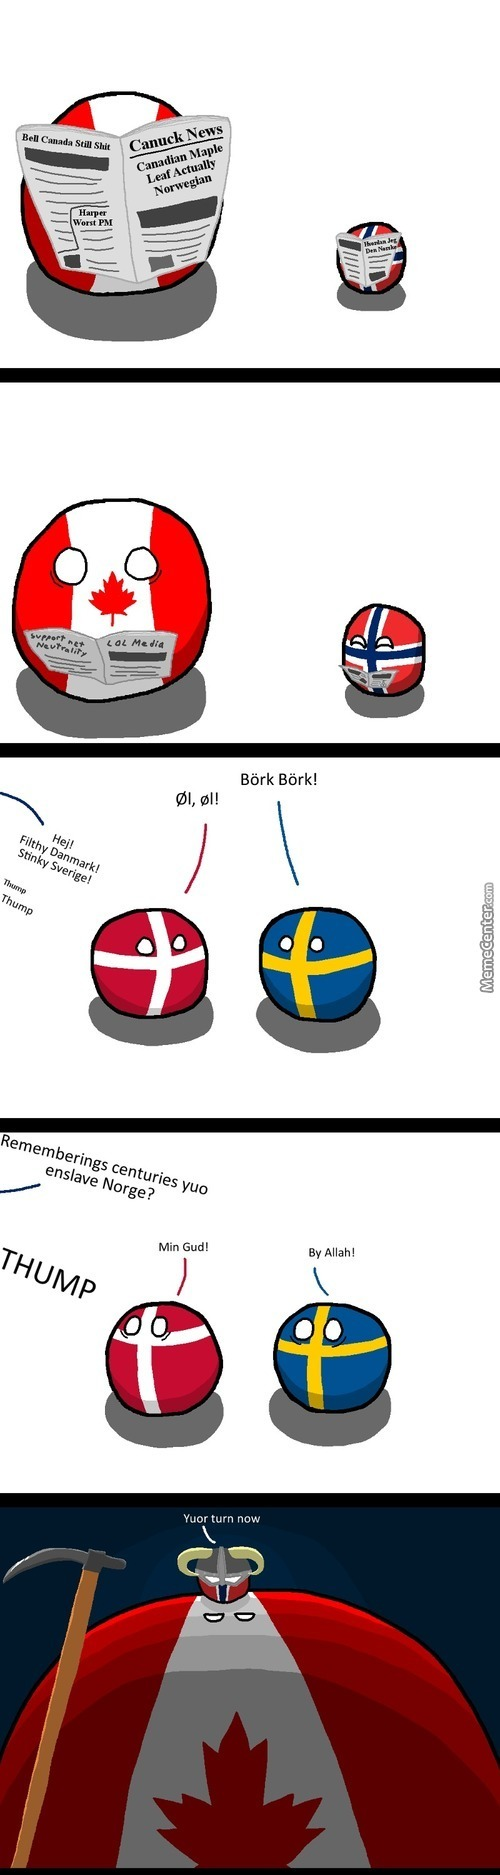 Norway's Colony